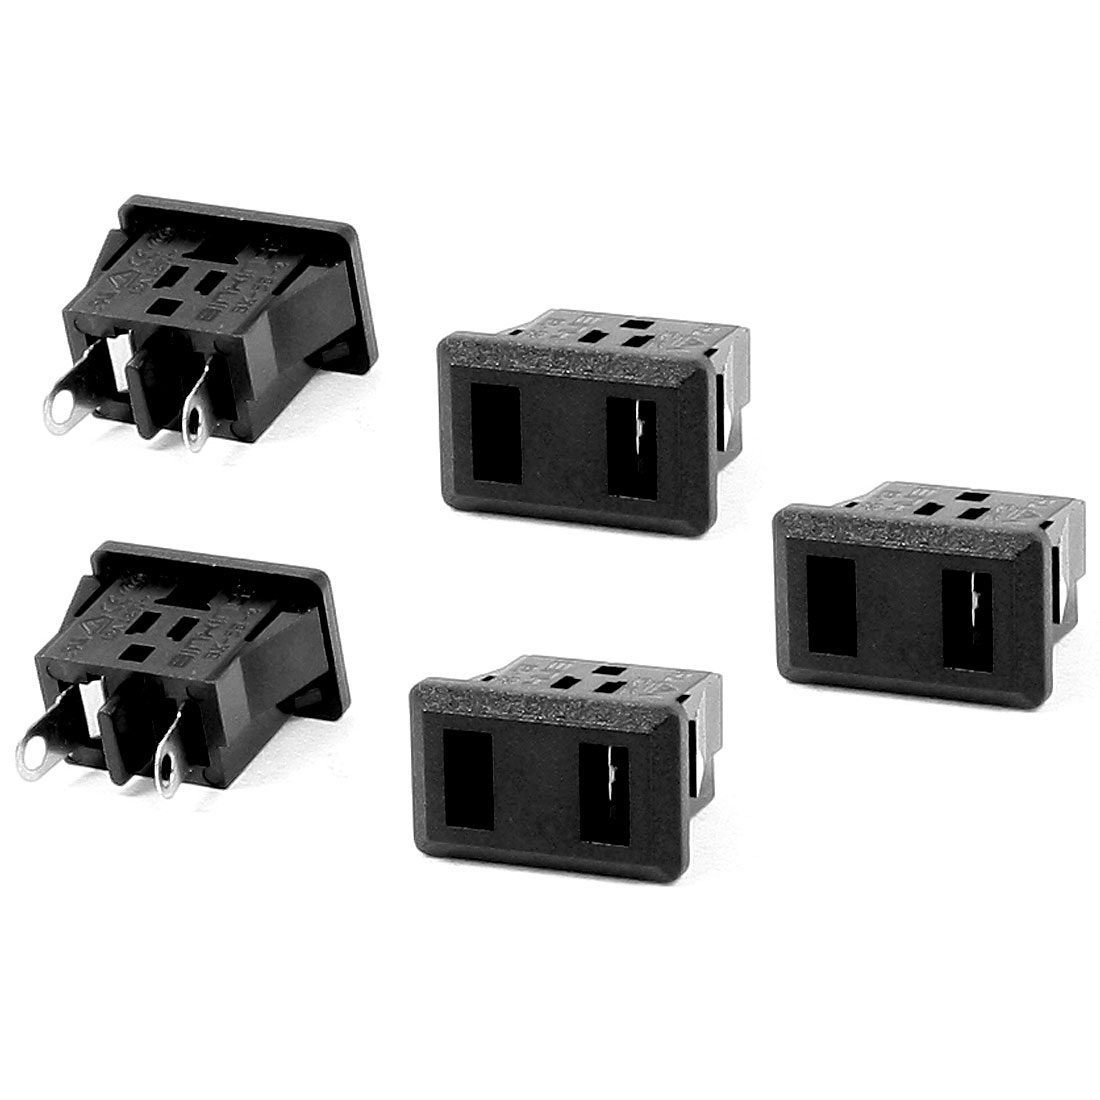 AC 125V 12A 2 Terminals US 2 Terminals Power Socket Connector Black 5 Pcs